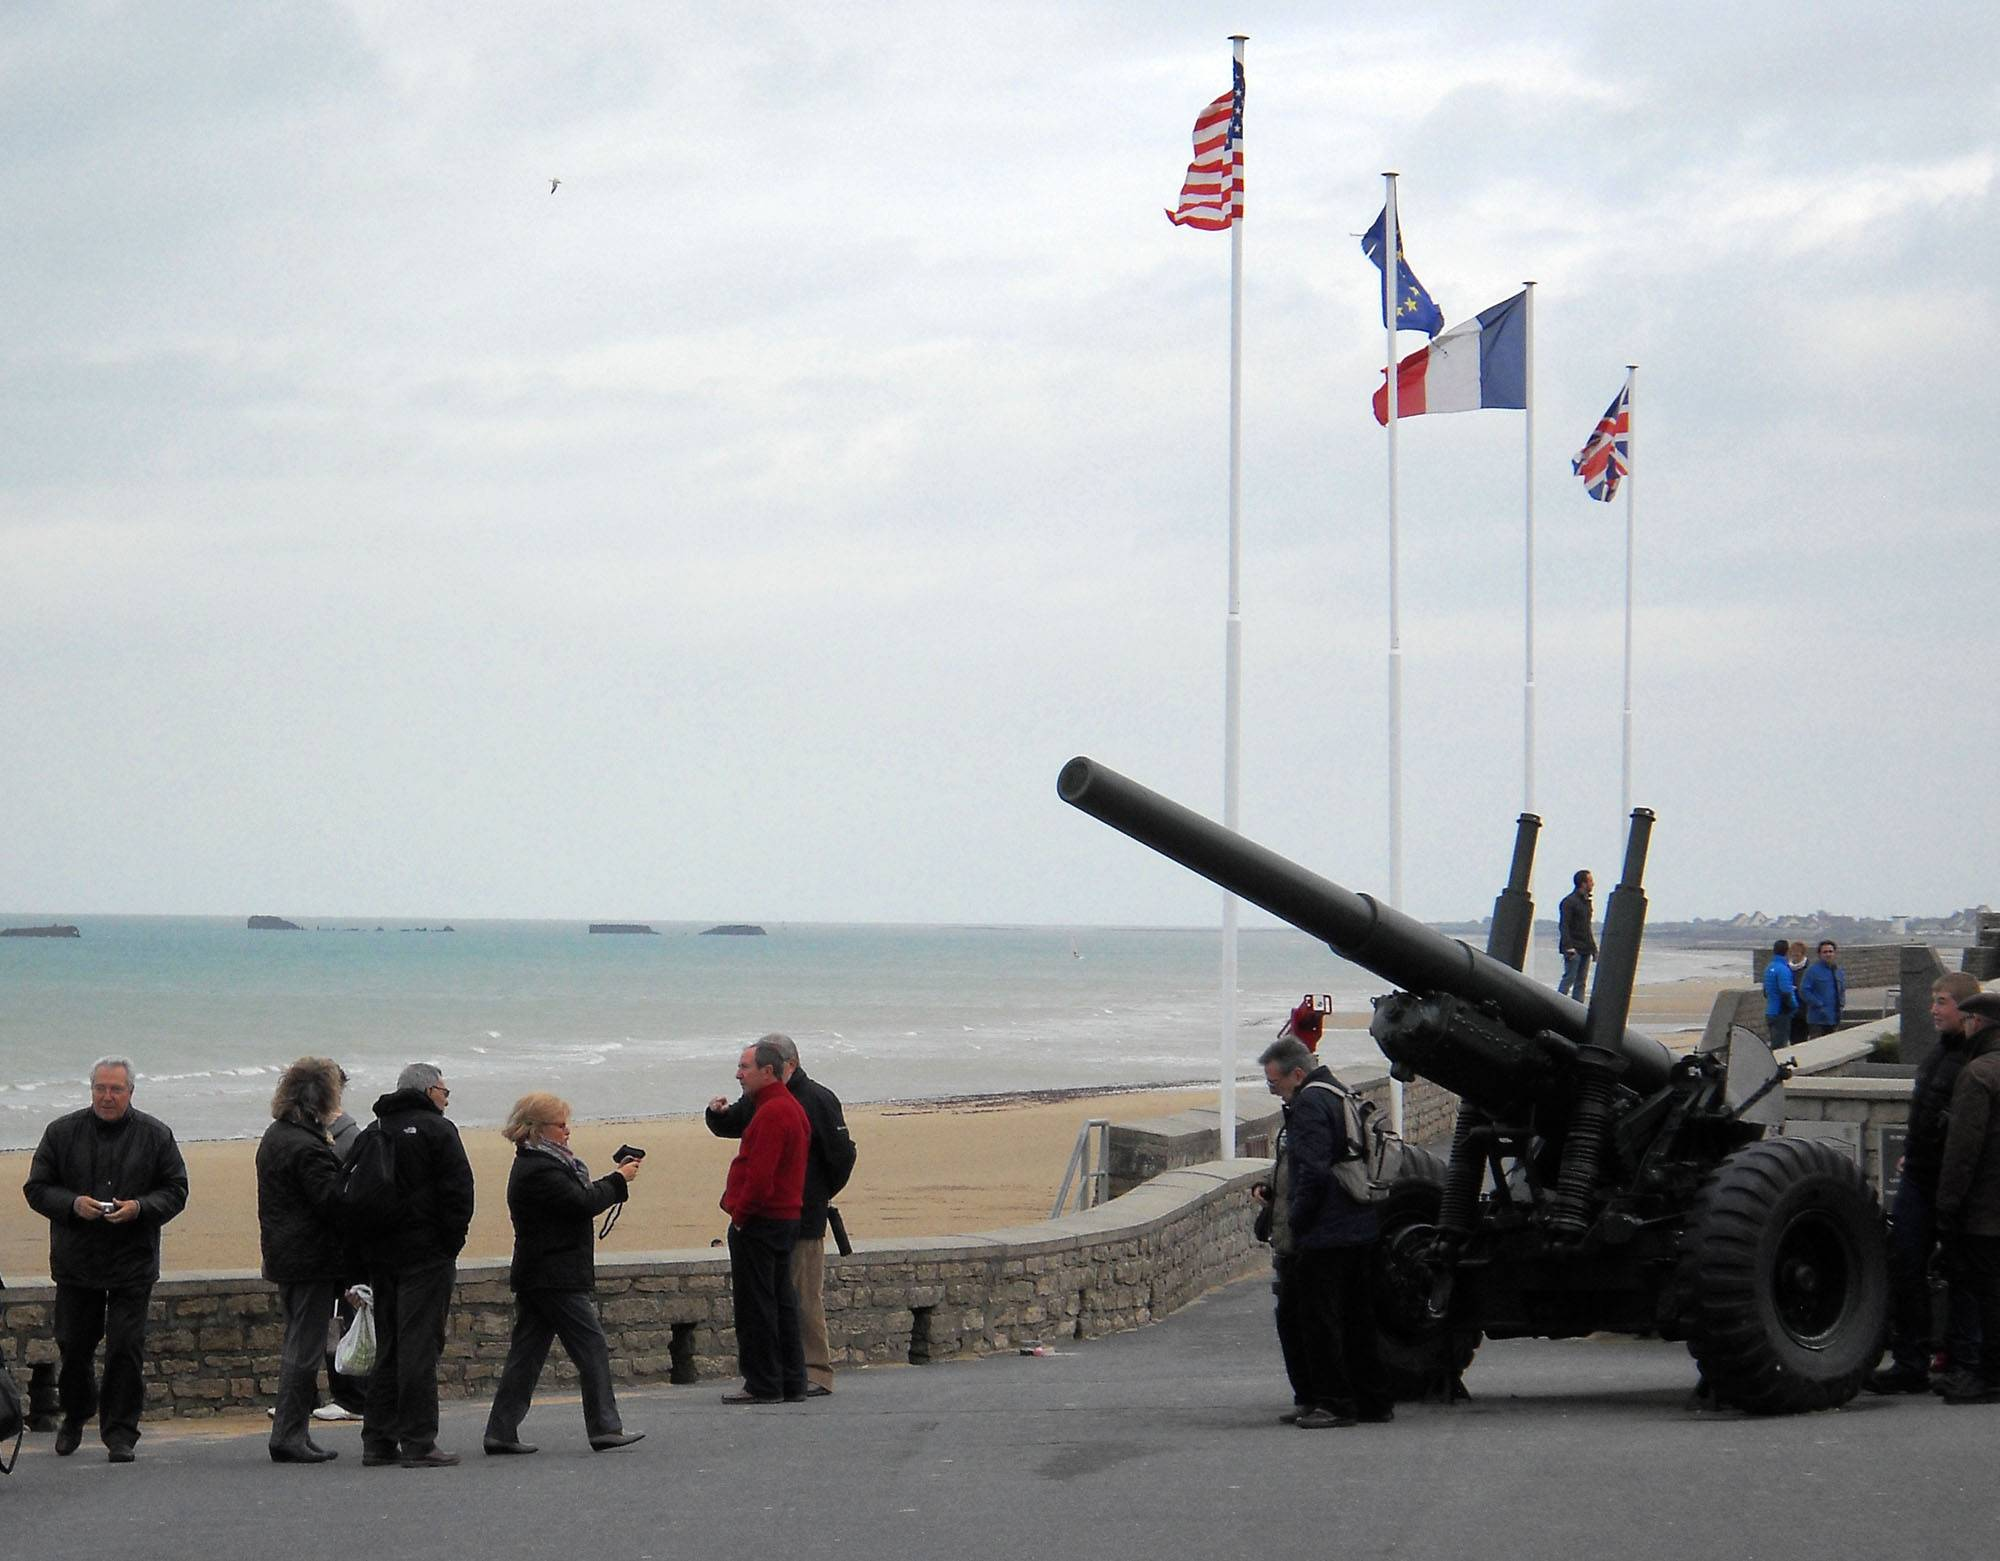 Tourists take photos outside of the seaside D-Day Museum (Musee du Debarquement) in Arromanches, France. Arromanches is one of several beaches on the coast of Normandy likely to see an influx of tourists for the 70th anniversary of D-Day on June 6, 2014.